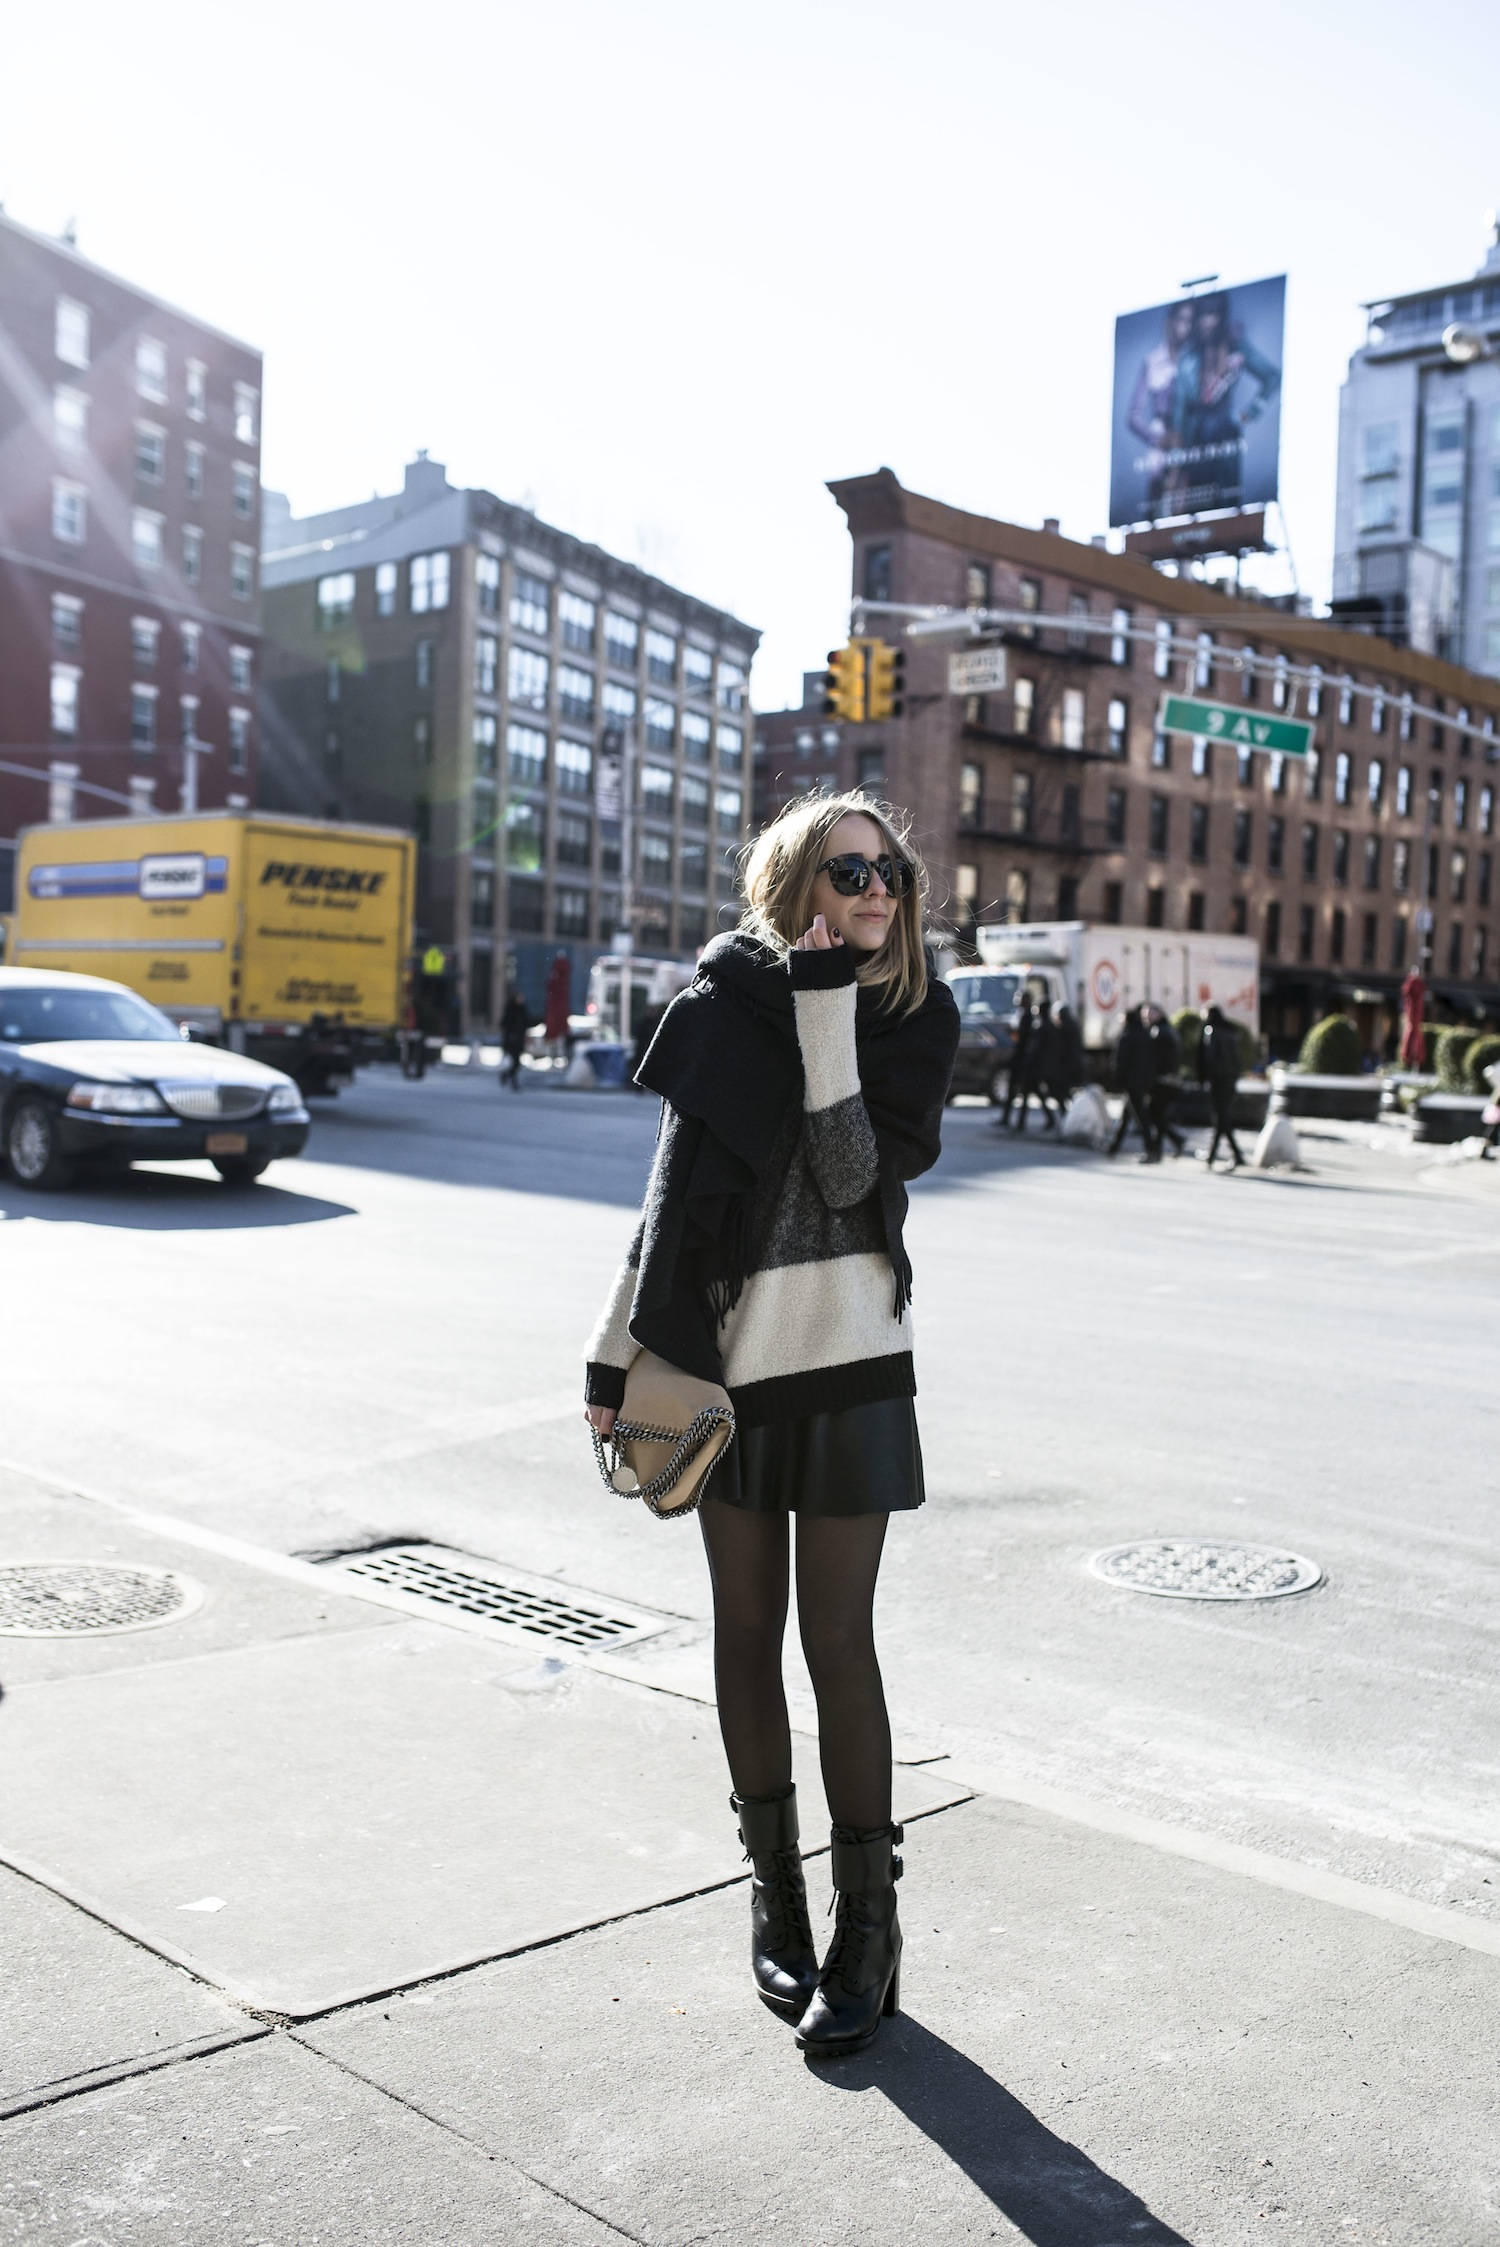 Just The Design: Tiphaine is wearing a striped Blake LDN sweater with a black leather Tommy Hilfiger mini skirt and Tory Burch boots